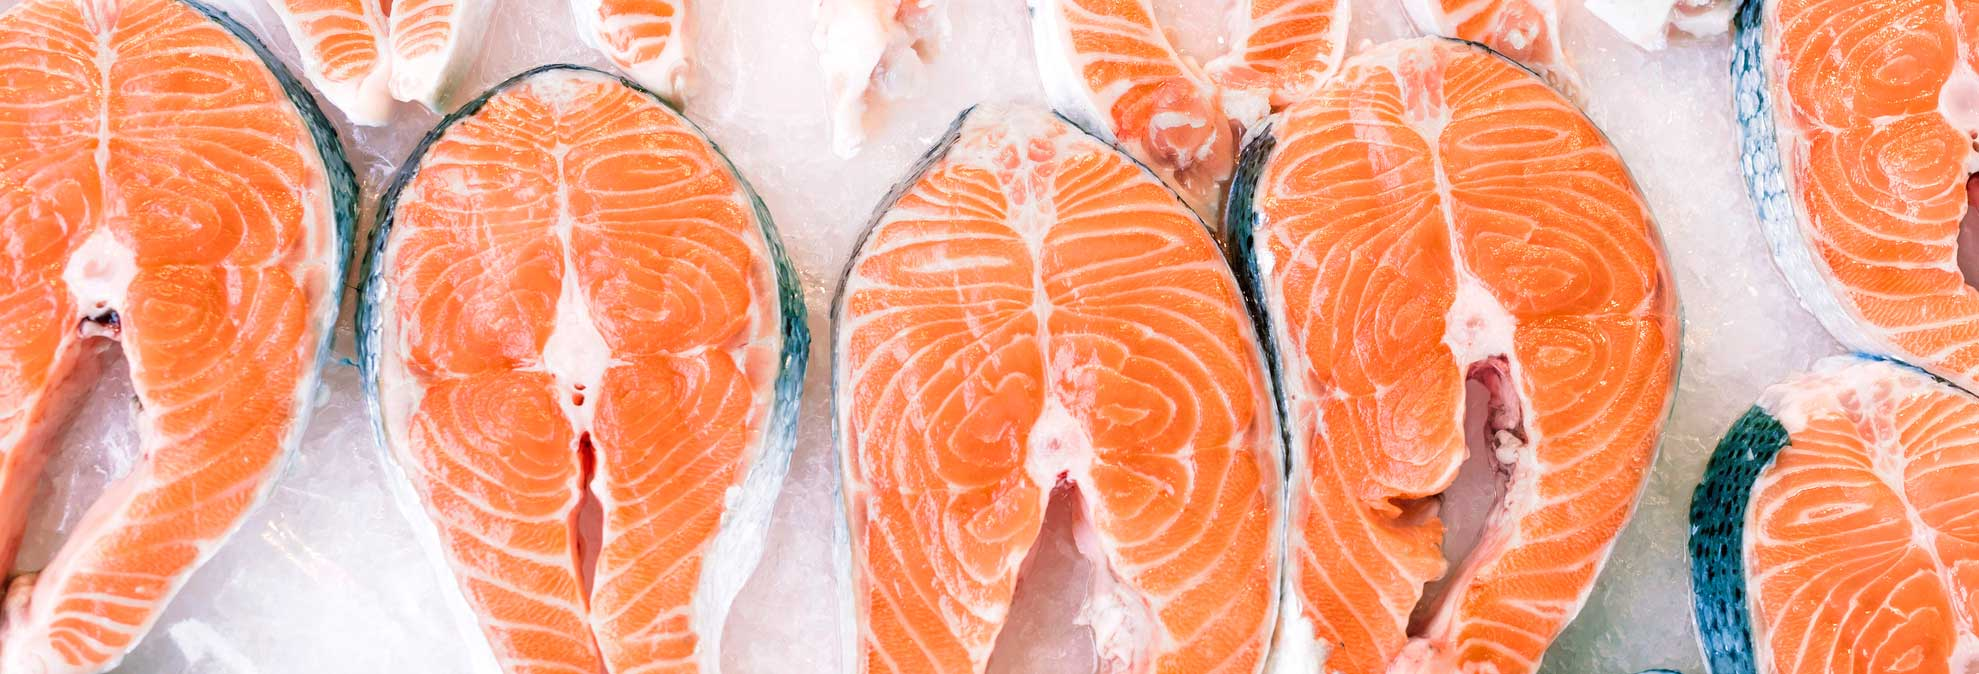 Salmon, Recommended during and after Pregnancy